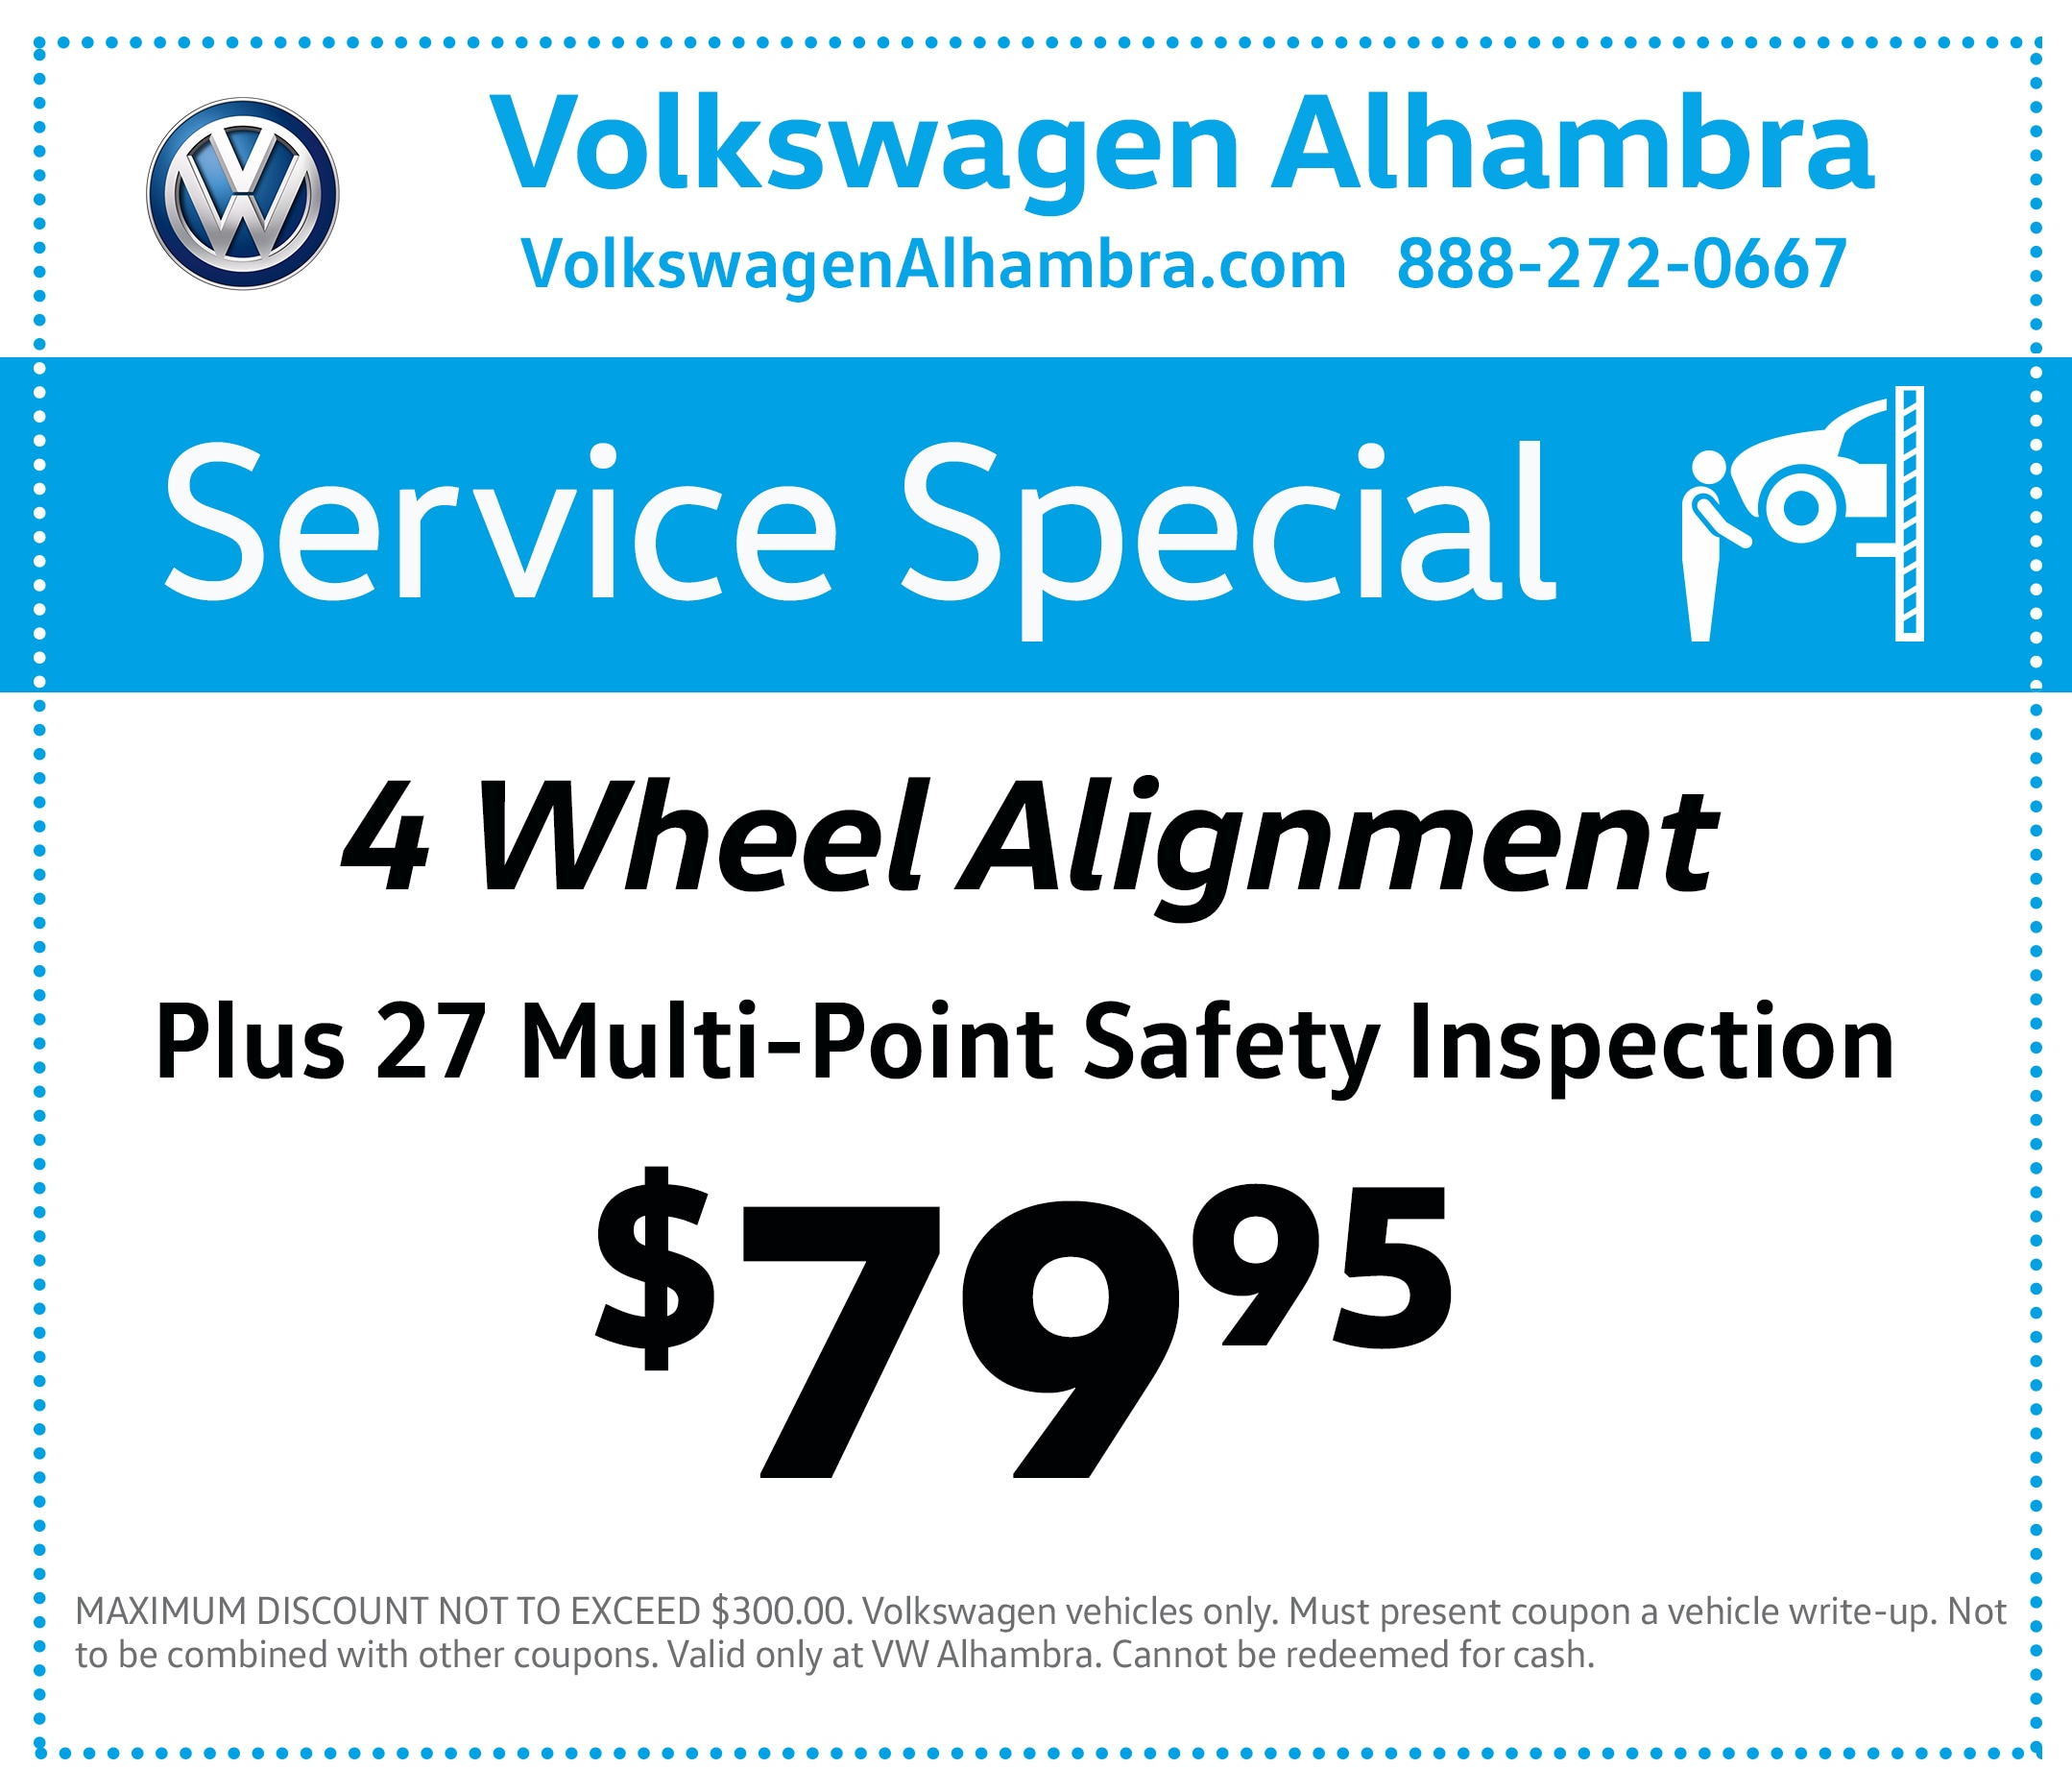 4-wheel Alignment special at VW Alhambra